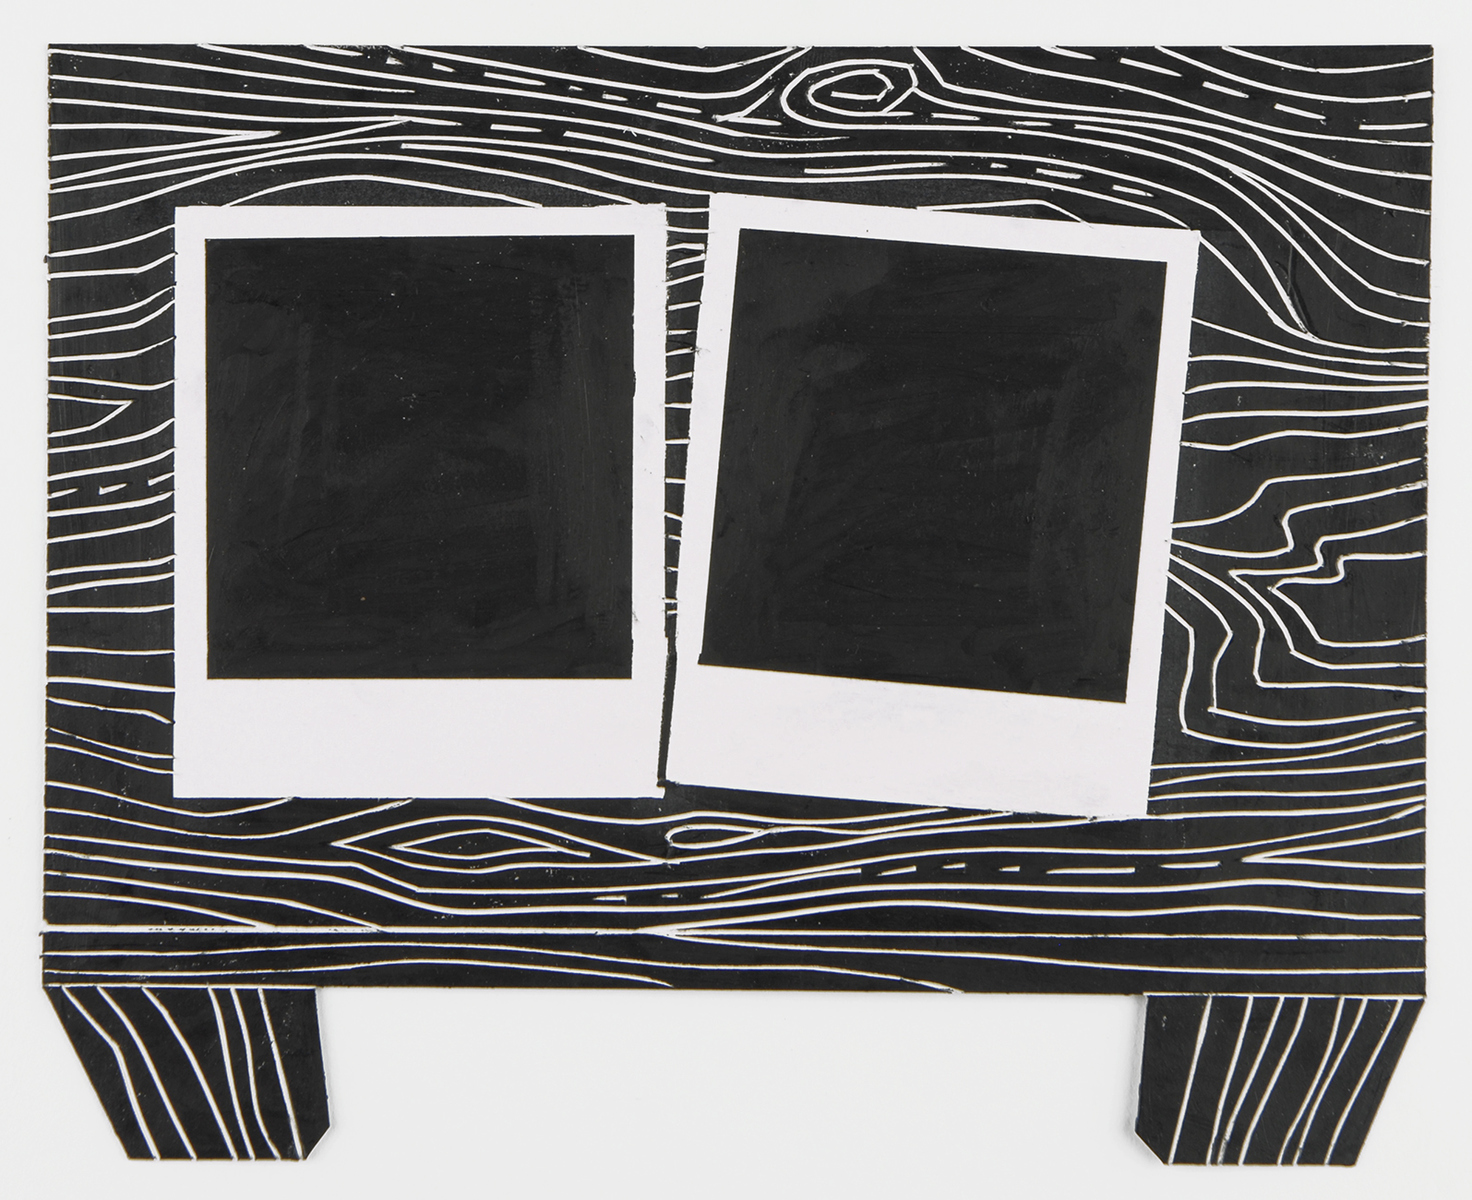 black drawings 2014-2015 Polaroids on Table